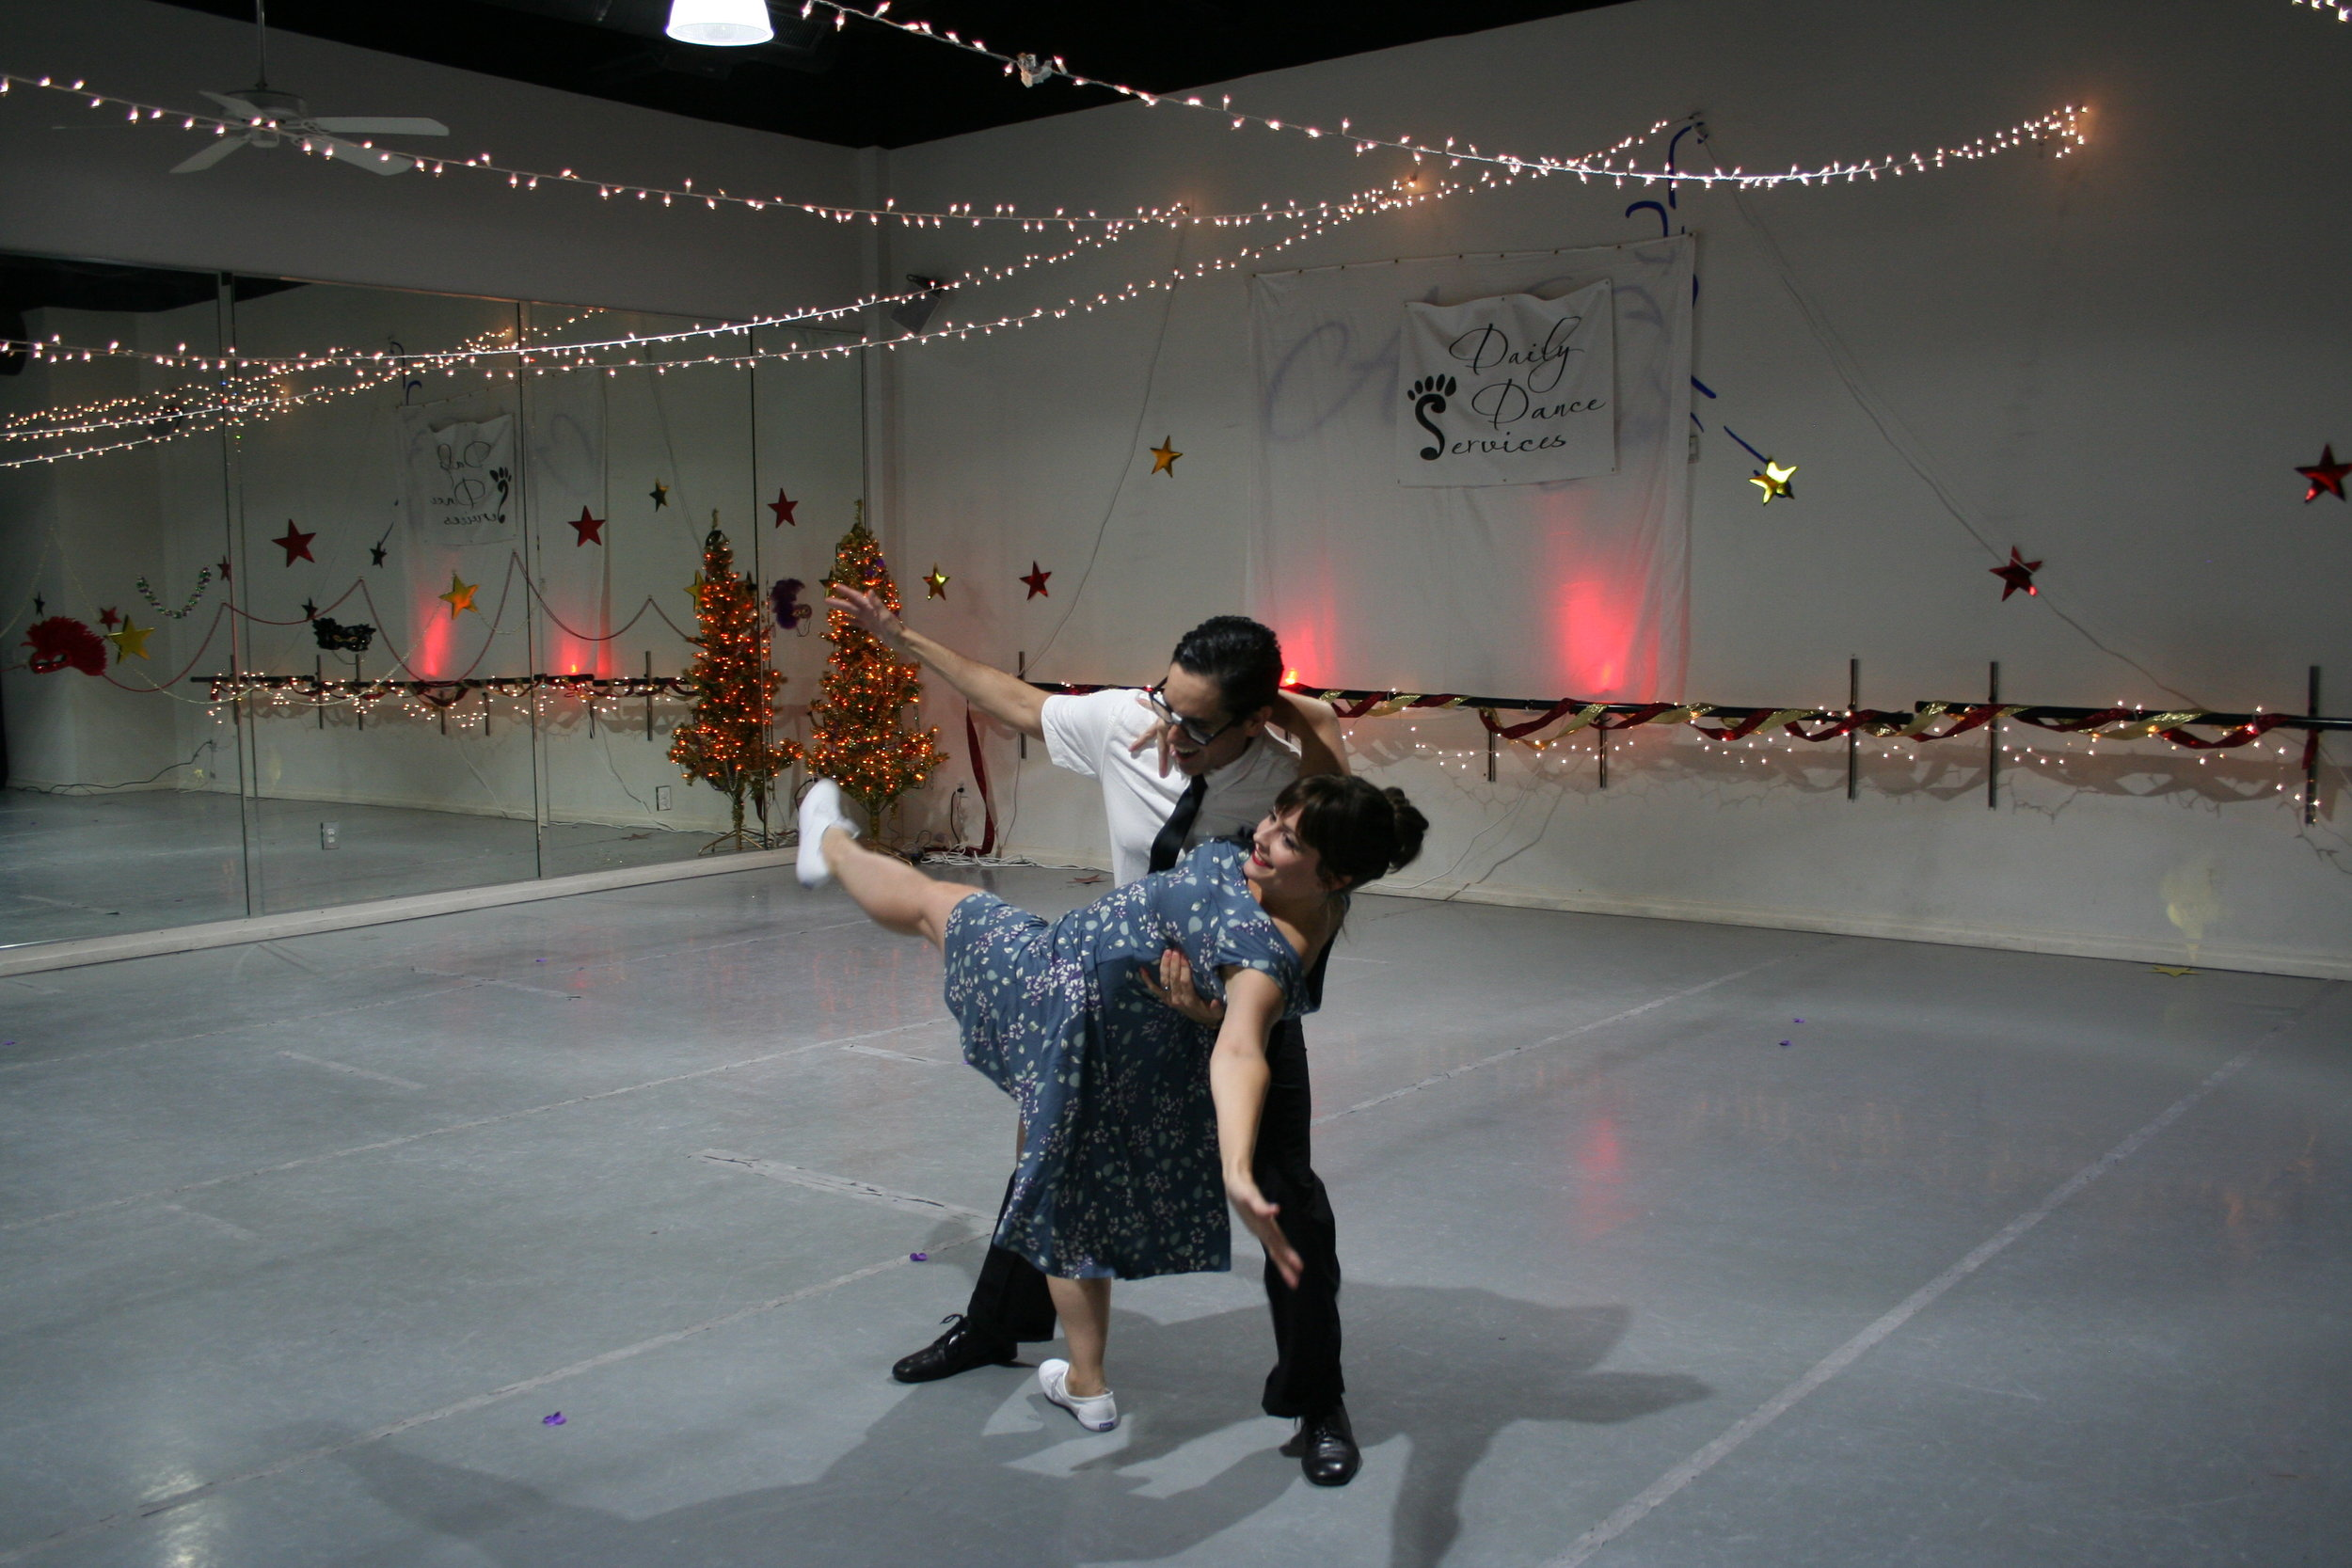 Two Daily Dance students performing a Swing routine